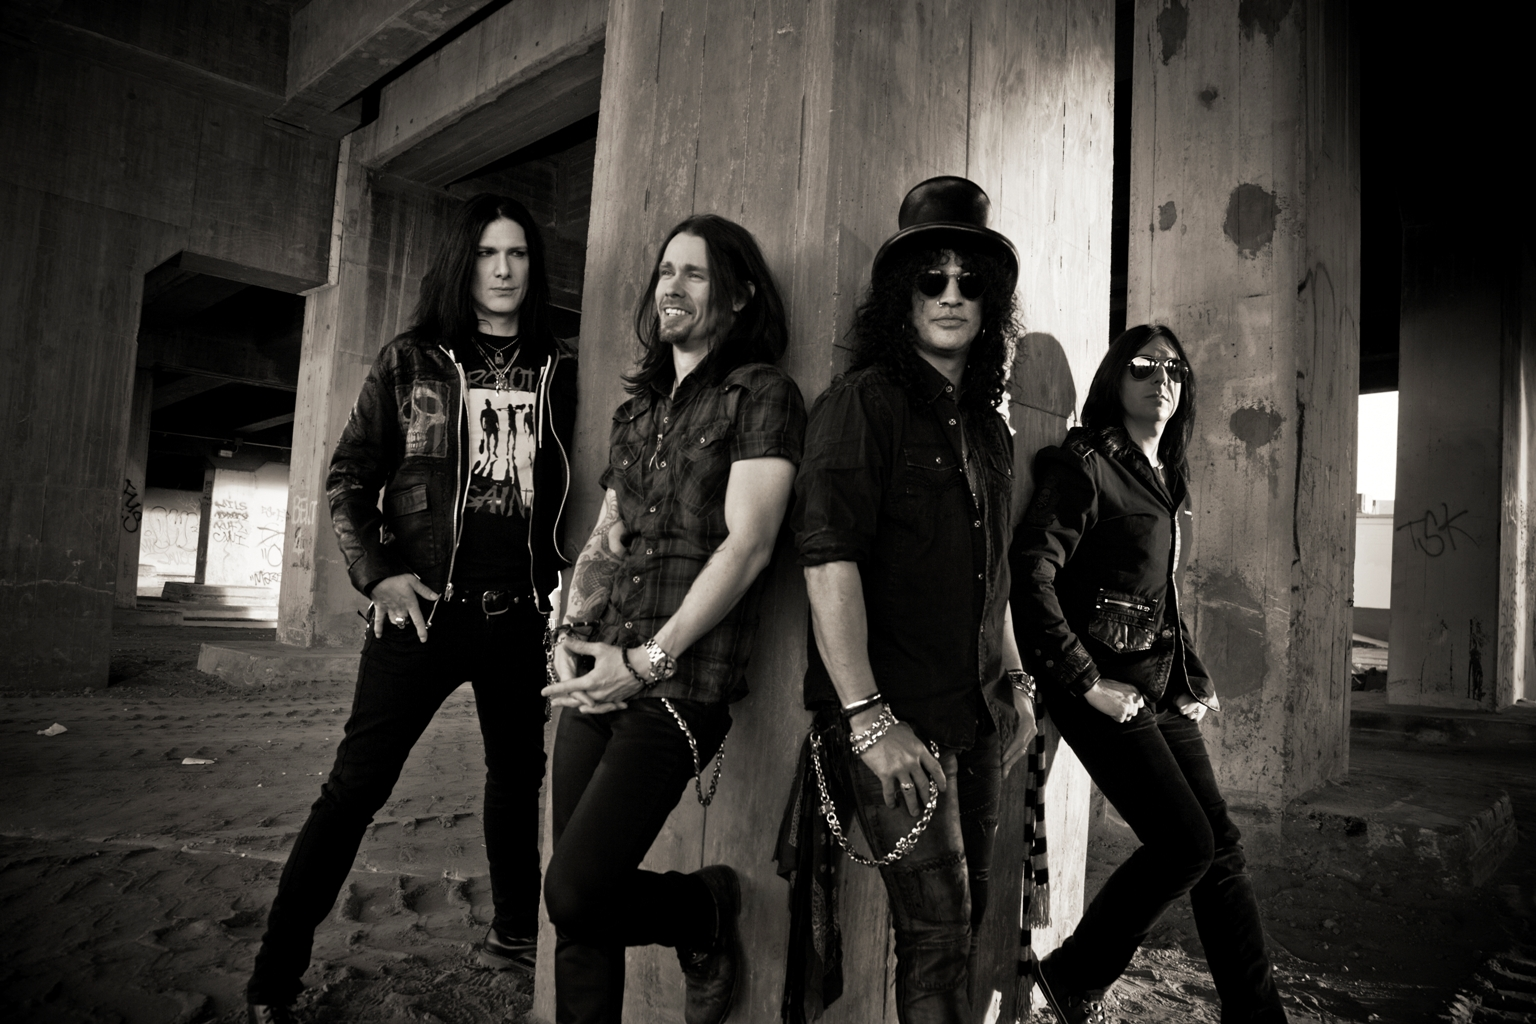 slash-group_photo_2012_large_by_travis_shinn